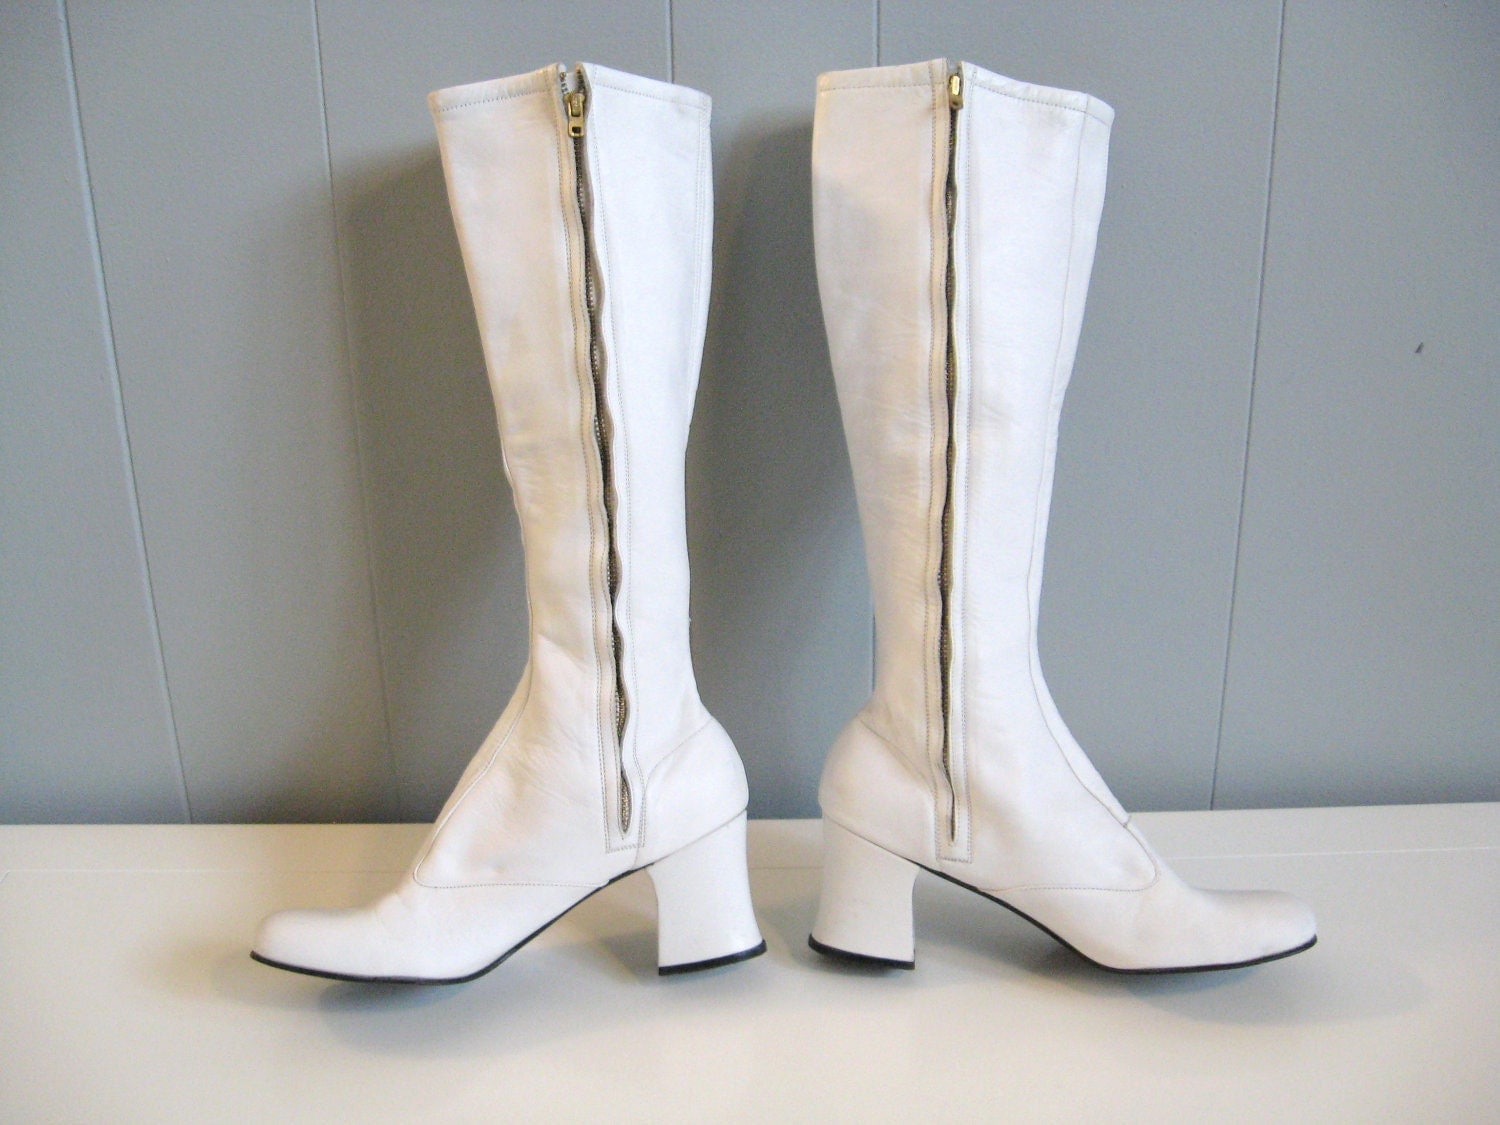 60s vintage white leather mod gogo boots 6 7 by